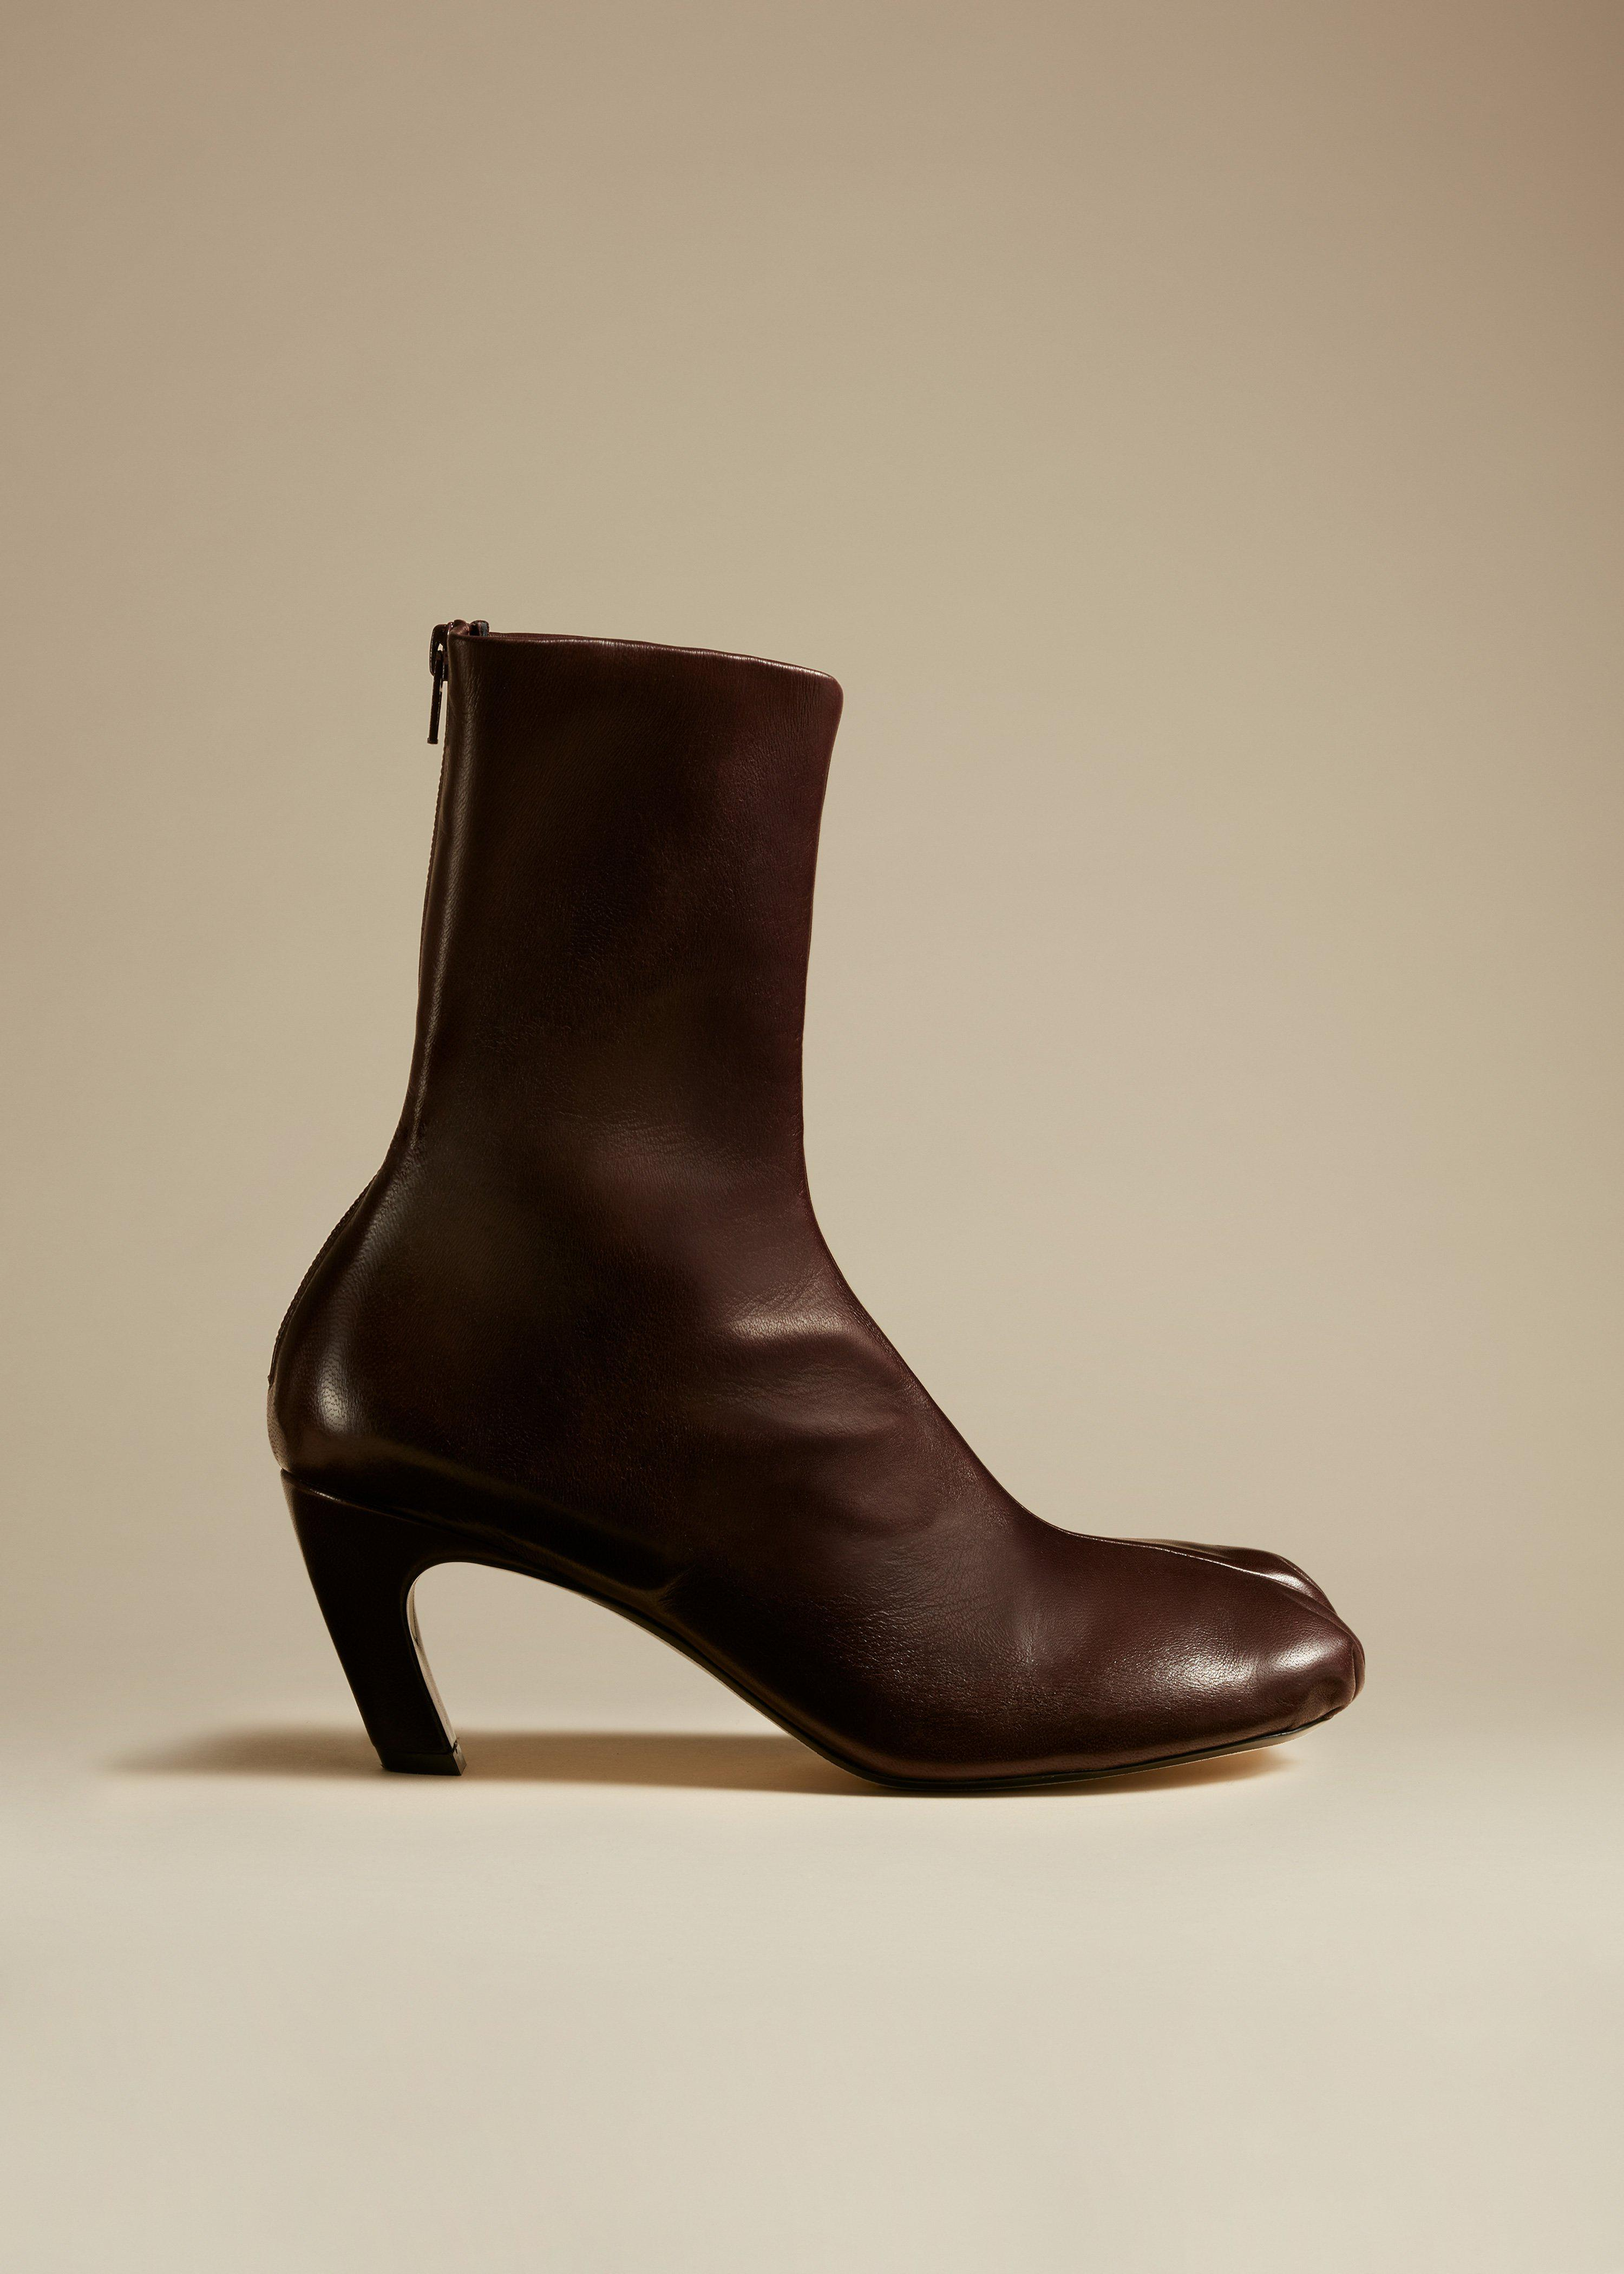 The Normandy Boot in Bordeaux Leather